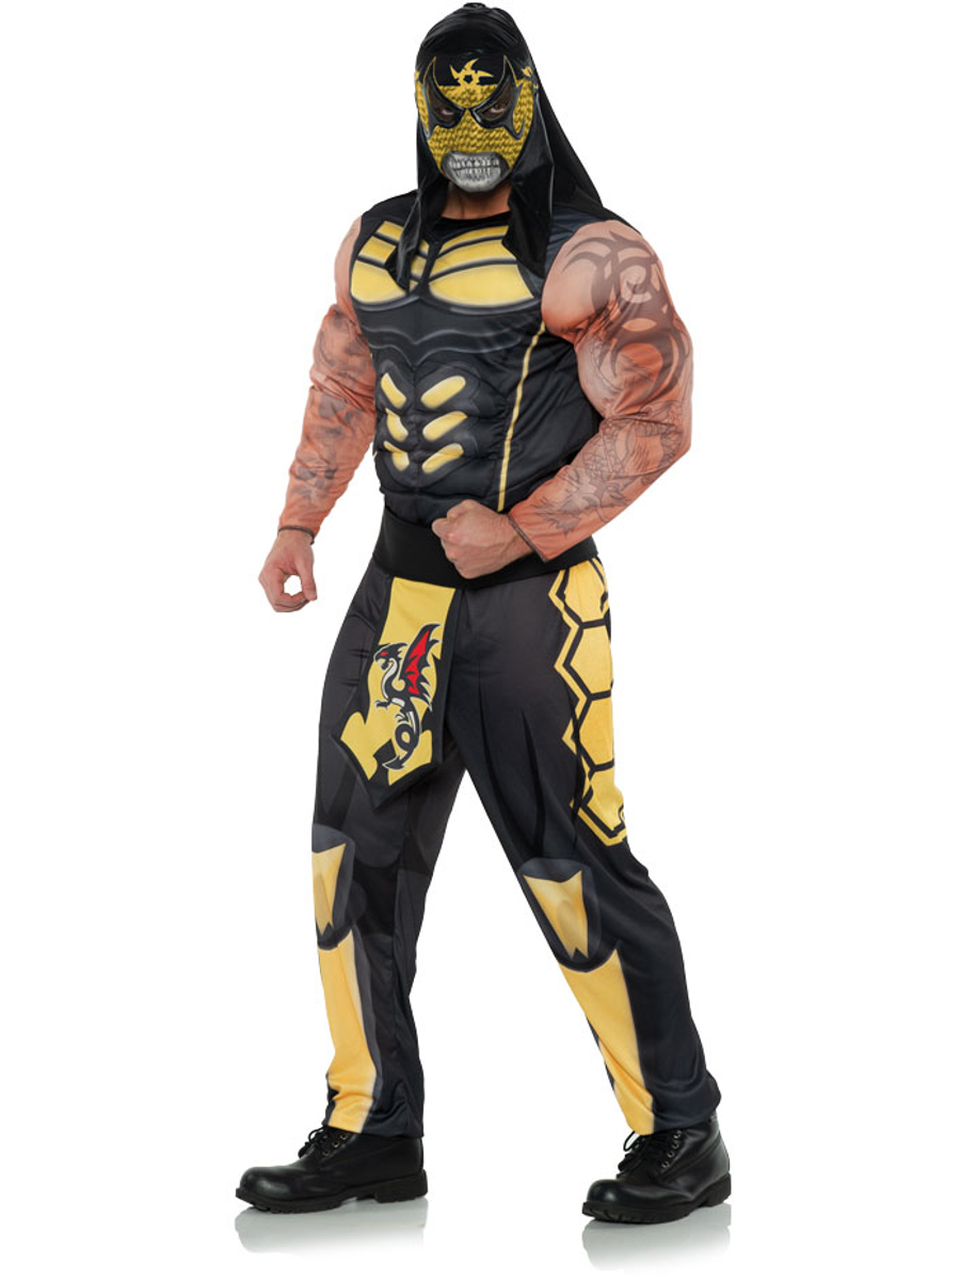 LUCHA LIBRE PENTA ZERO COSTUME FOR MEN